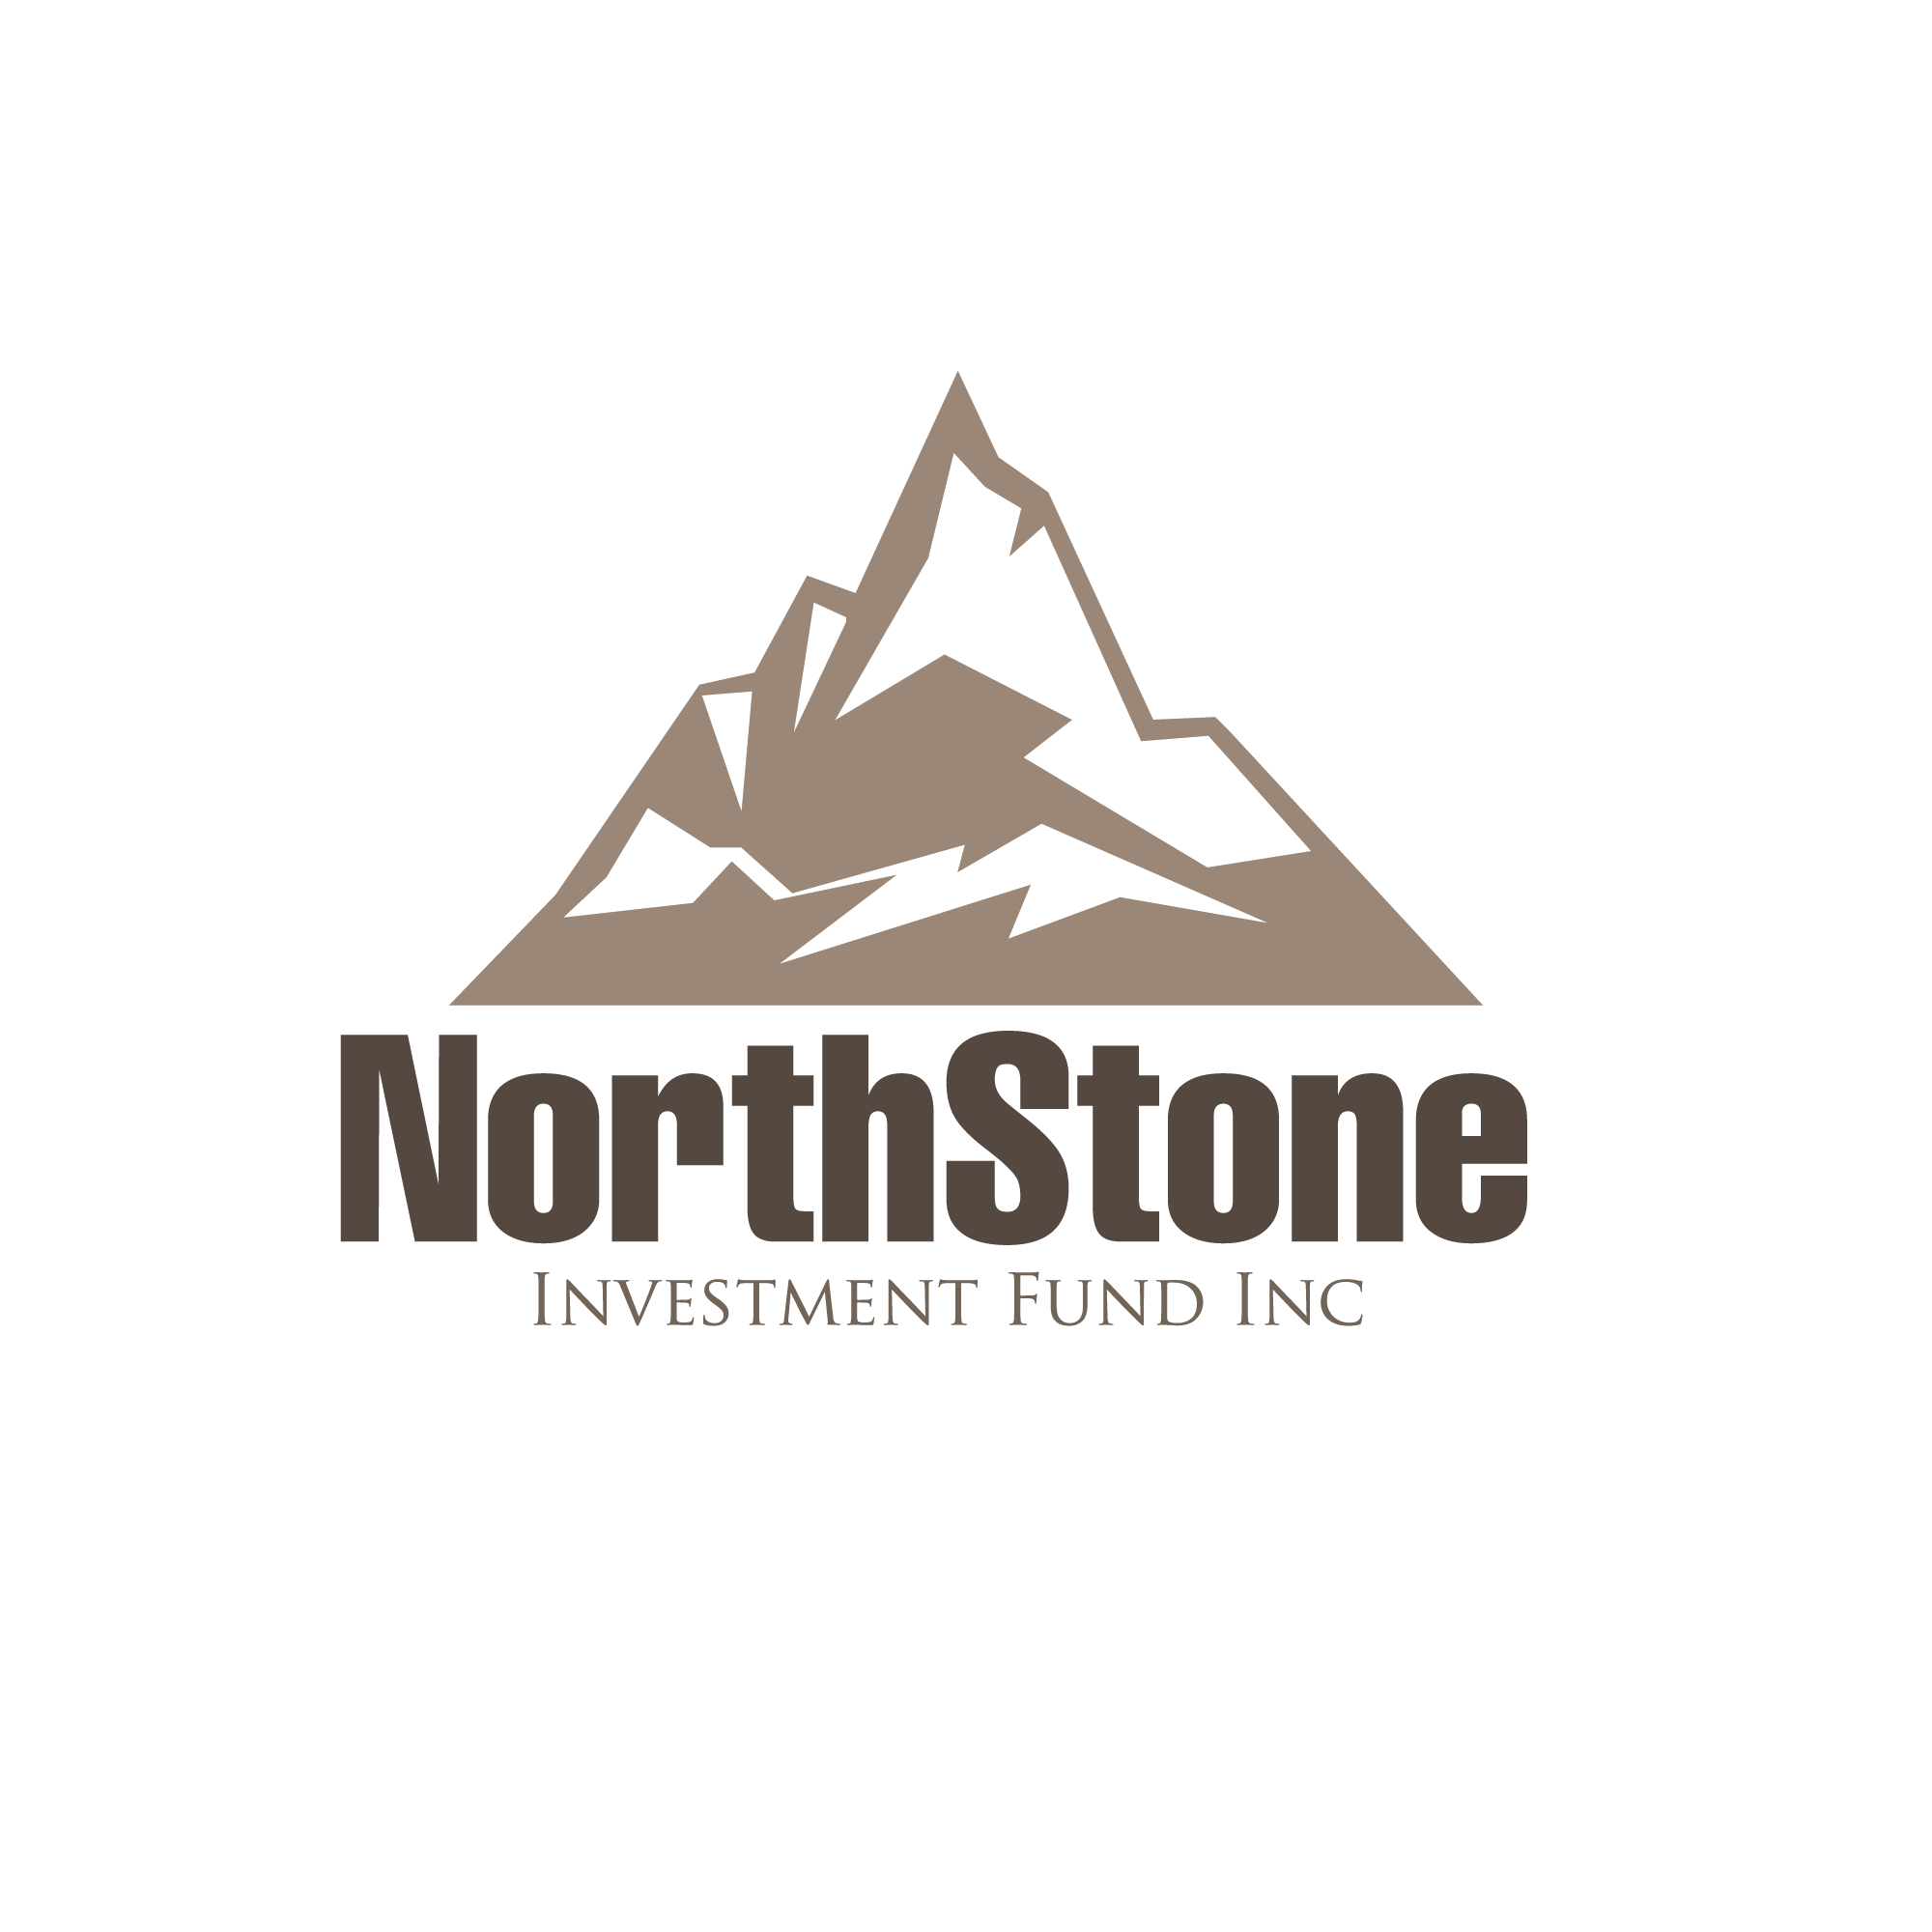 Logo Design by Joe Cortes - Entry No. 240 in the Logo Design Contest Unique Logo Design Wanted for NorthStone Investment Fund Inc.